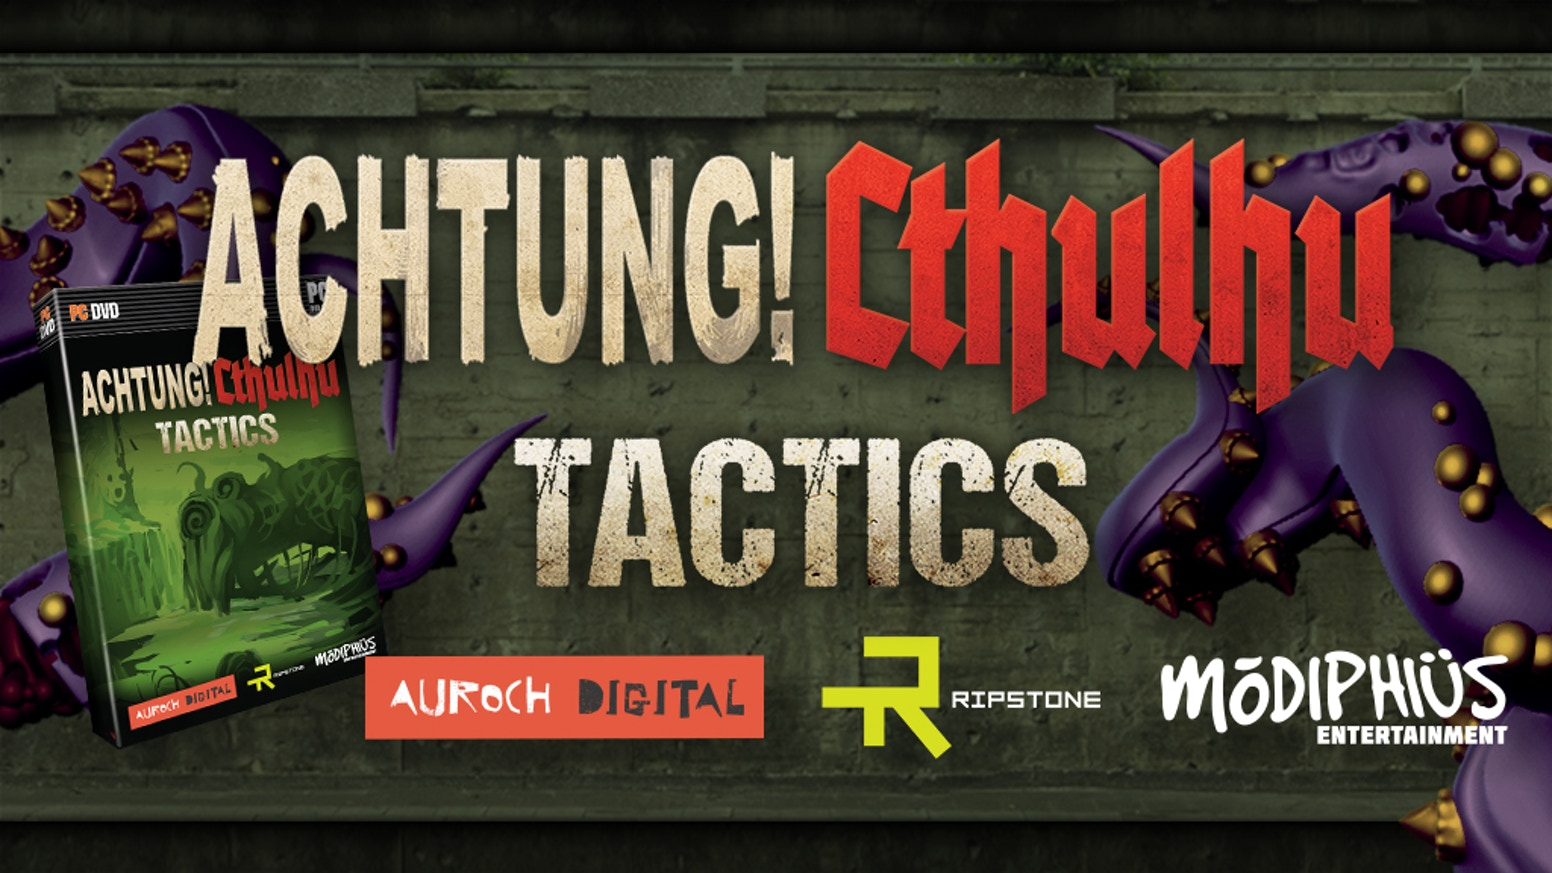 Fight the Nazis AND the spawn of Cthulhu in this exciting action/strategy/RPG game set in the award winning Achtung! Cthulhu universe.